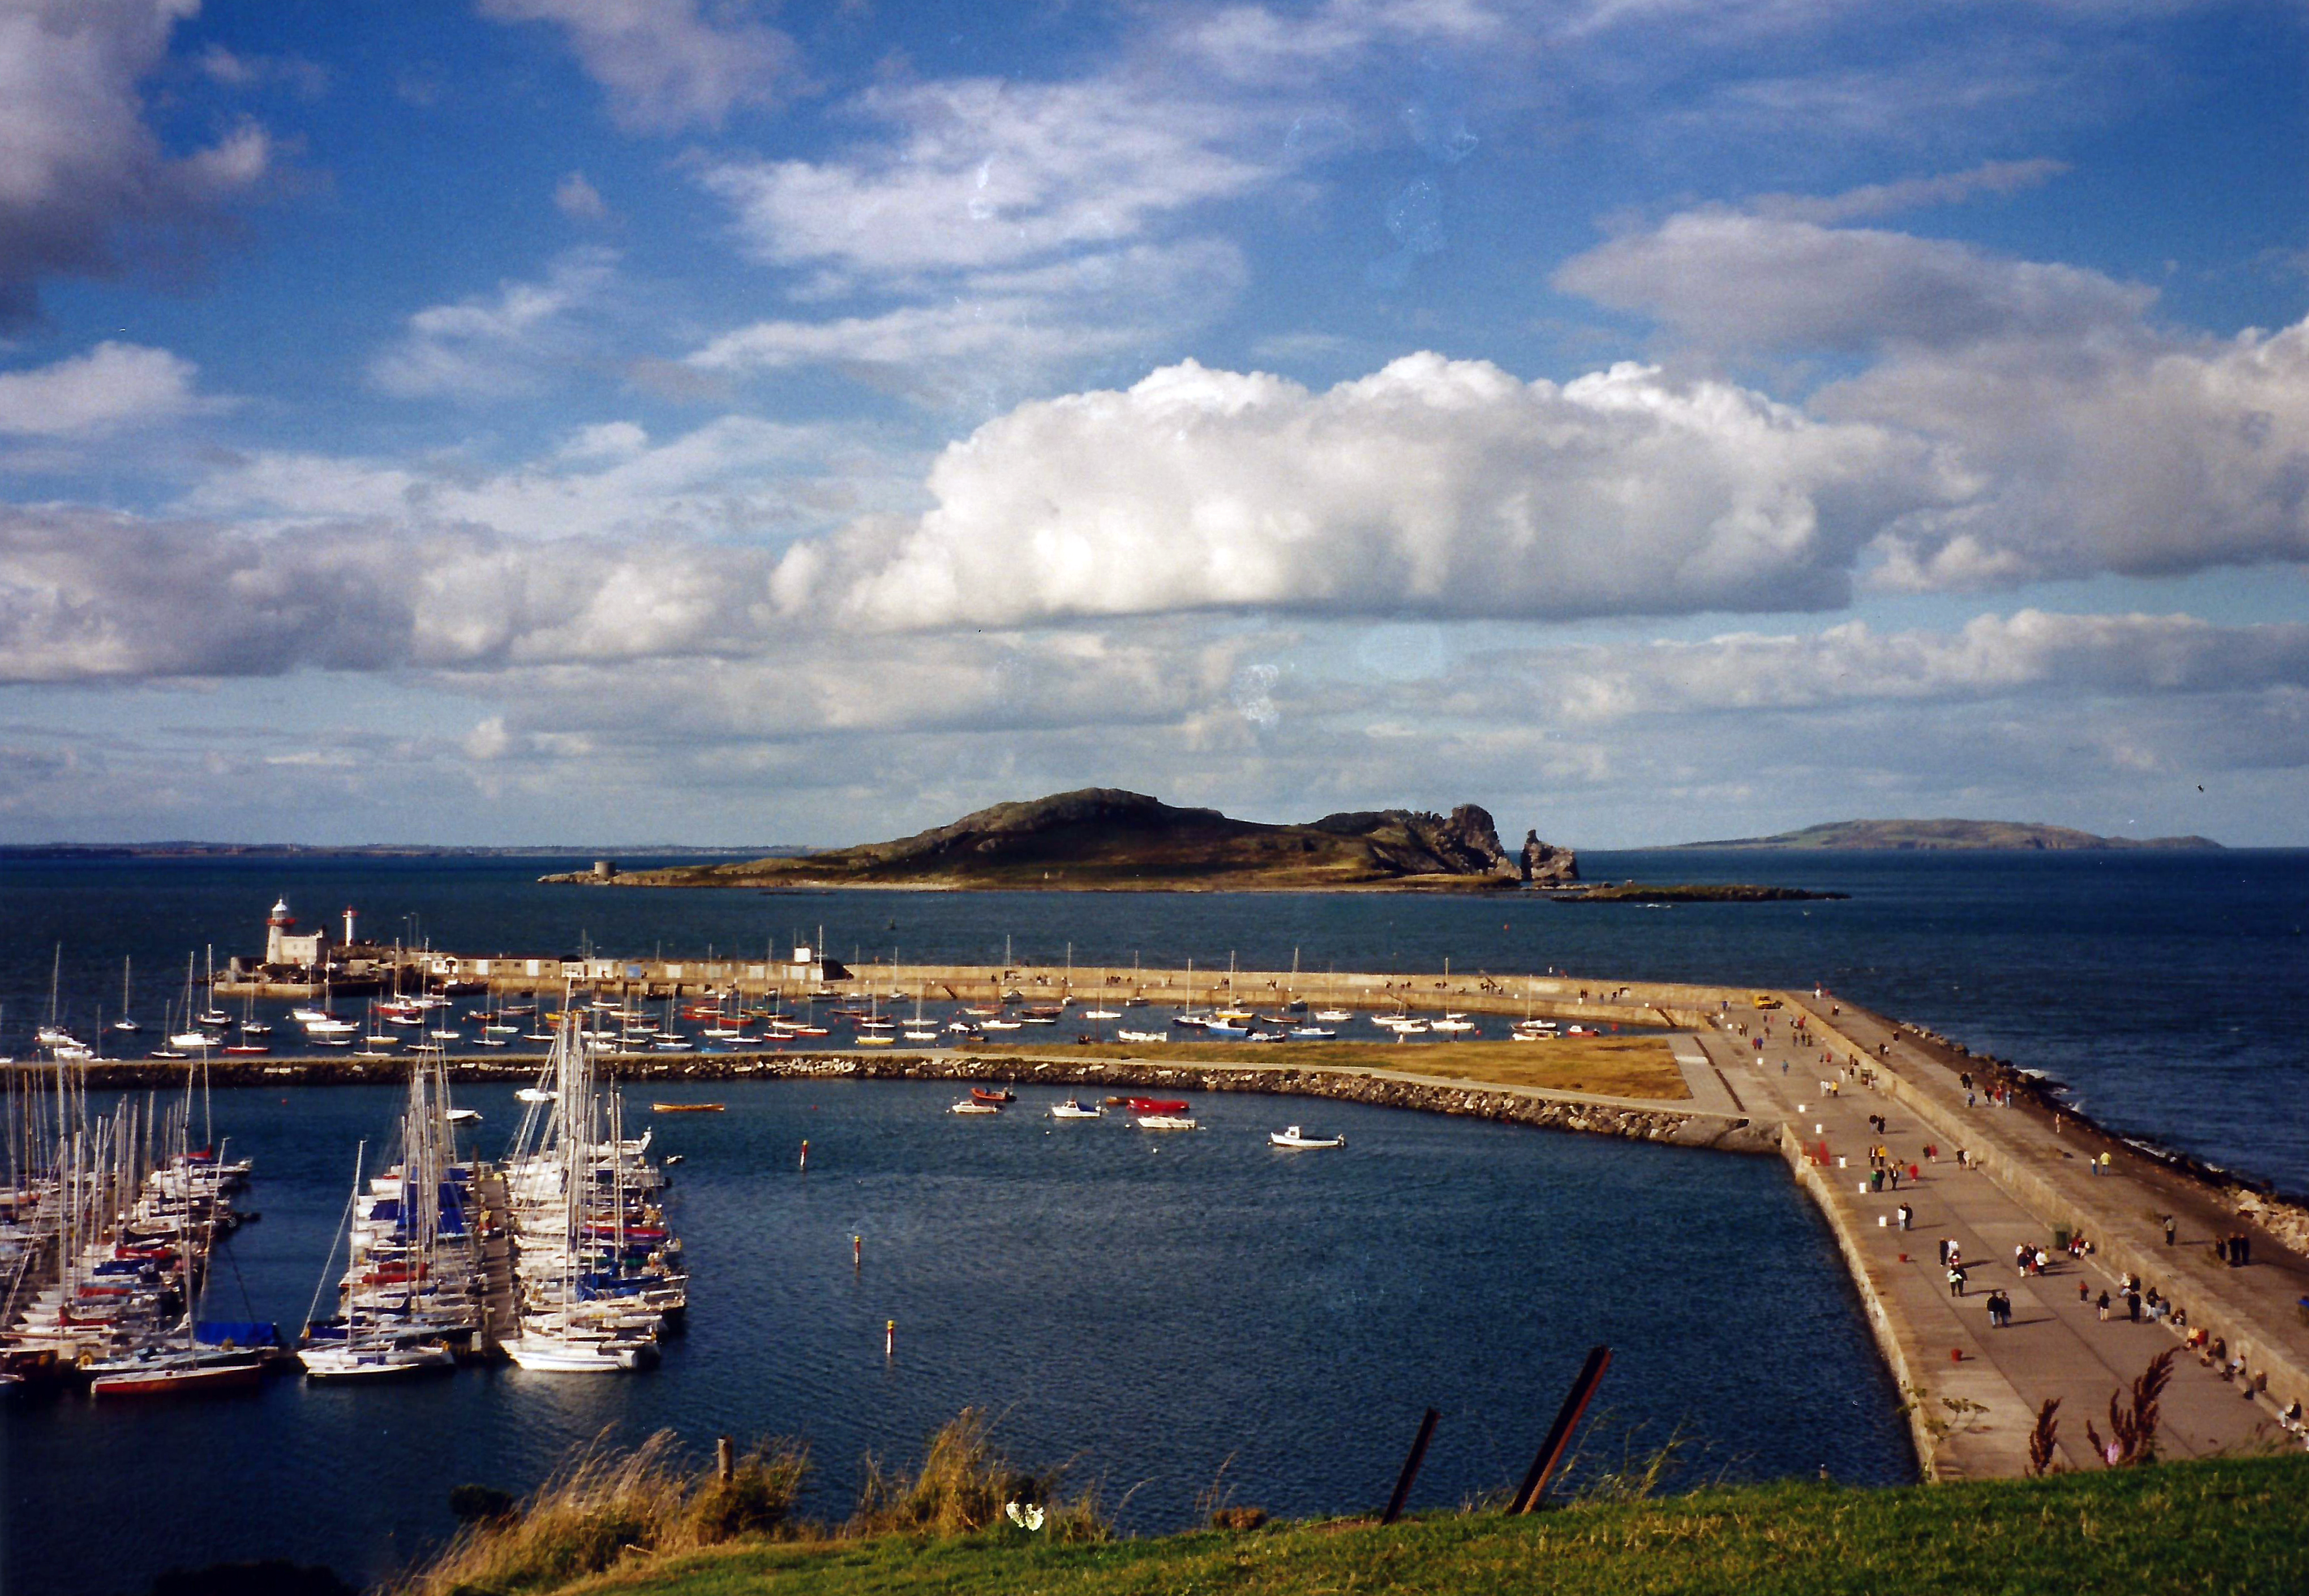 File:Ireland's Eye from Howth Harbour 1.jpg